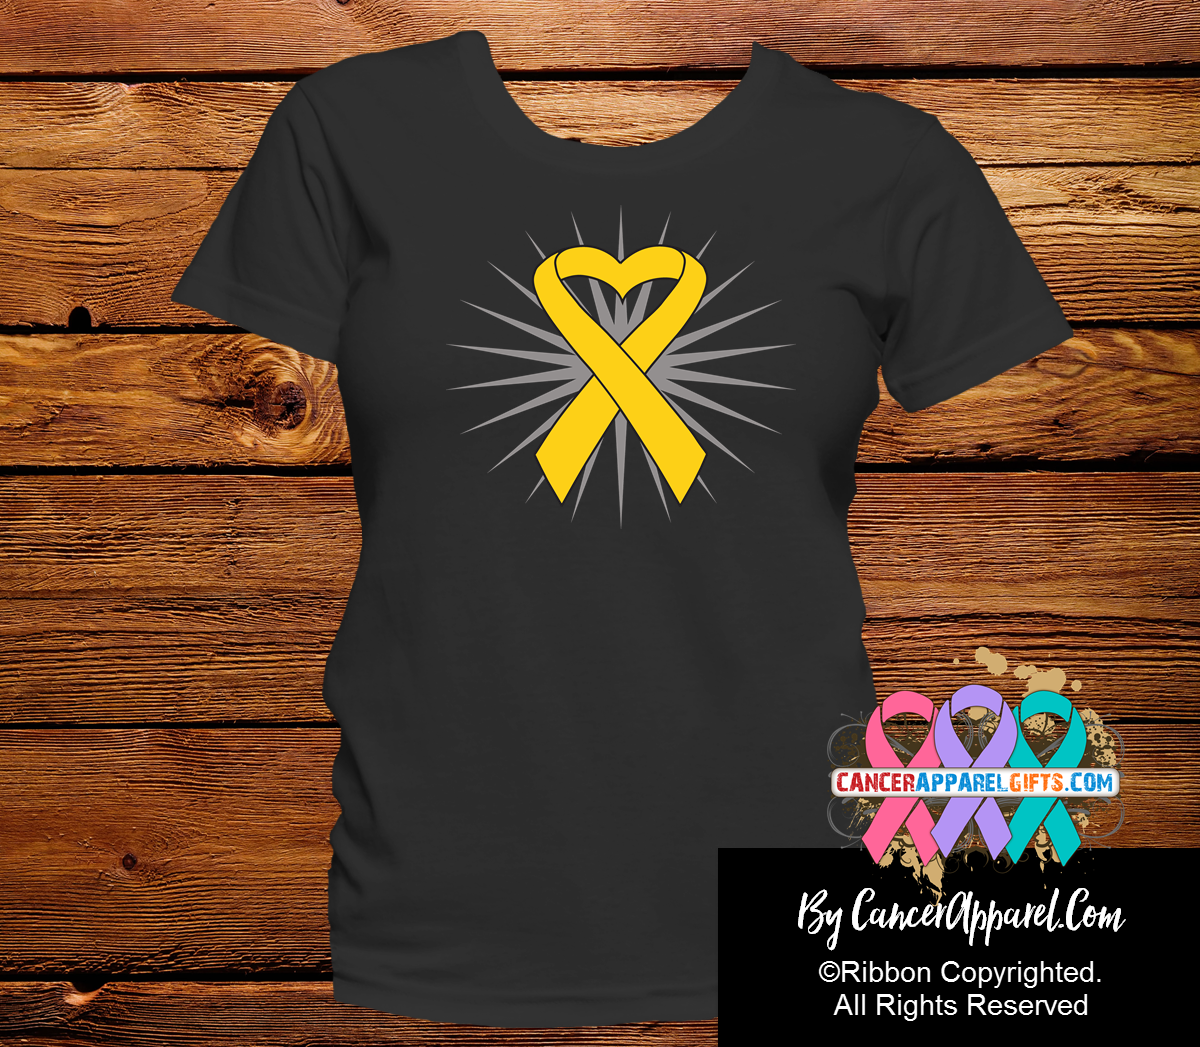 Childhood Cancer Heart Ribbon Shirts - Cancer Apparel and Gifts